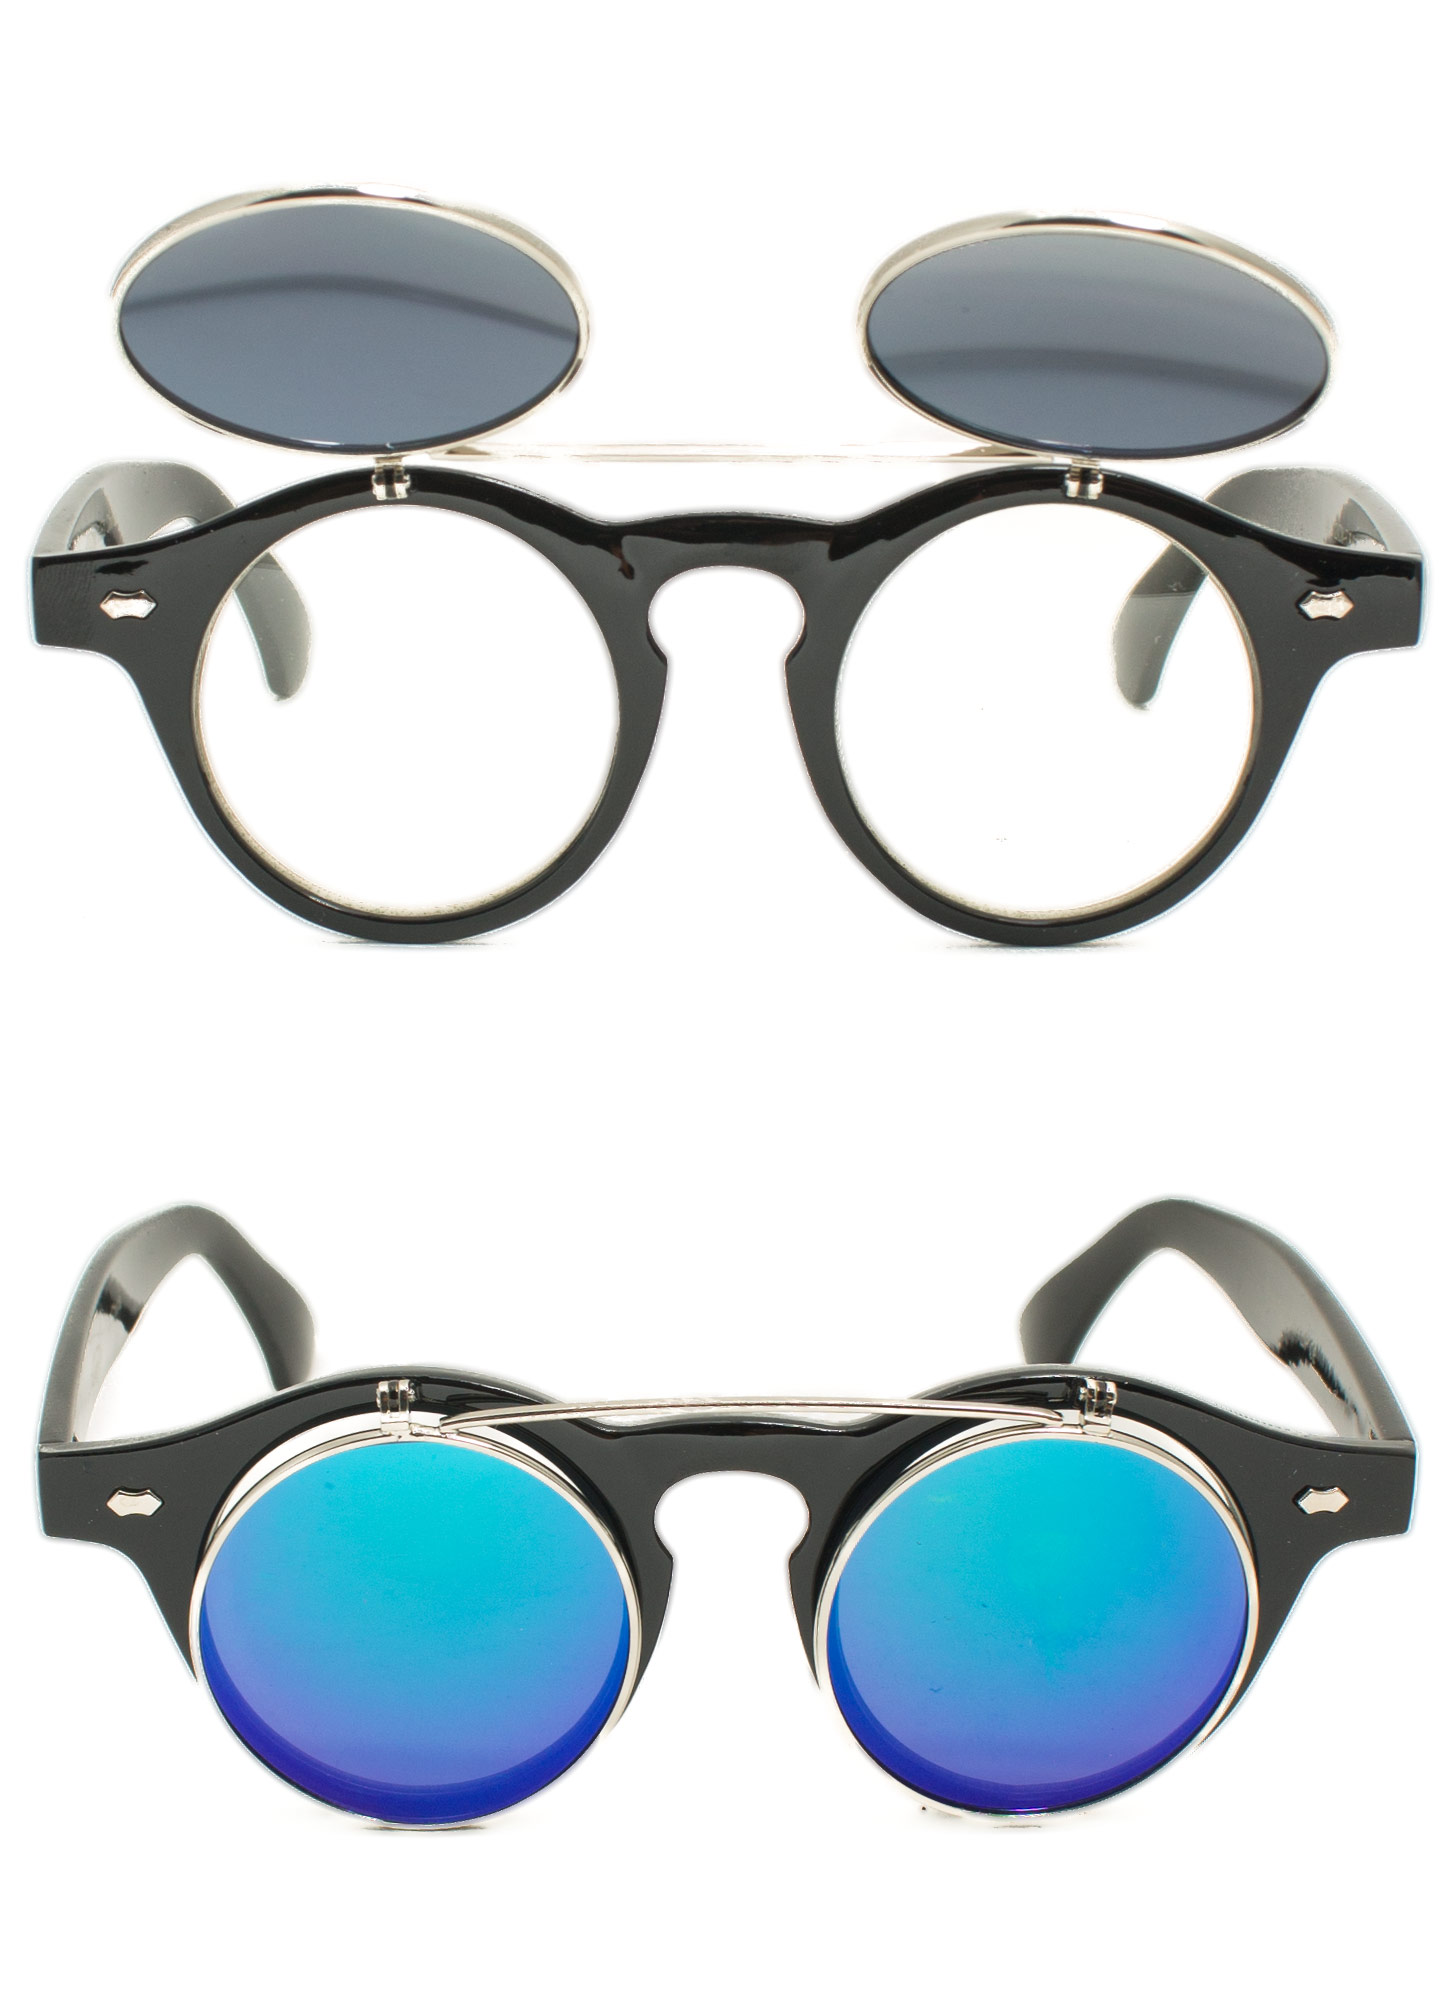 Round Reflective Flip-Up Sunglasses TEALBLACK